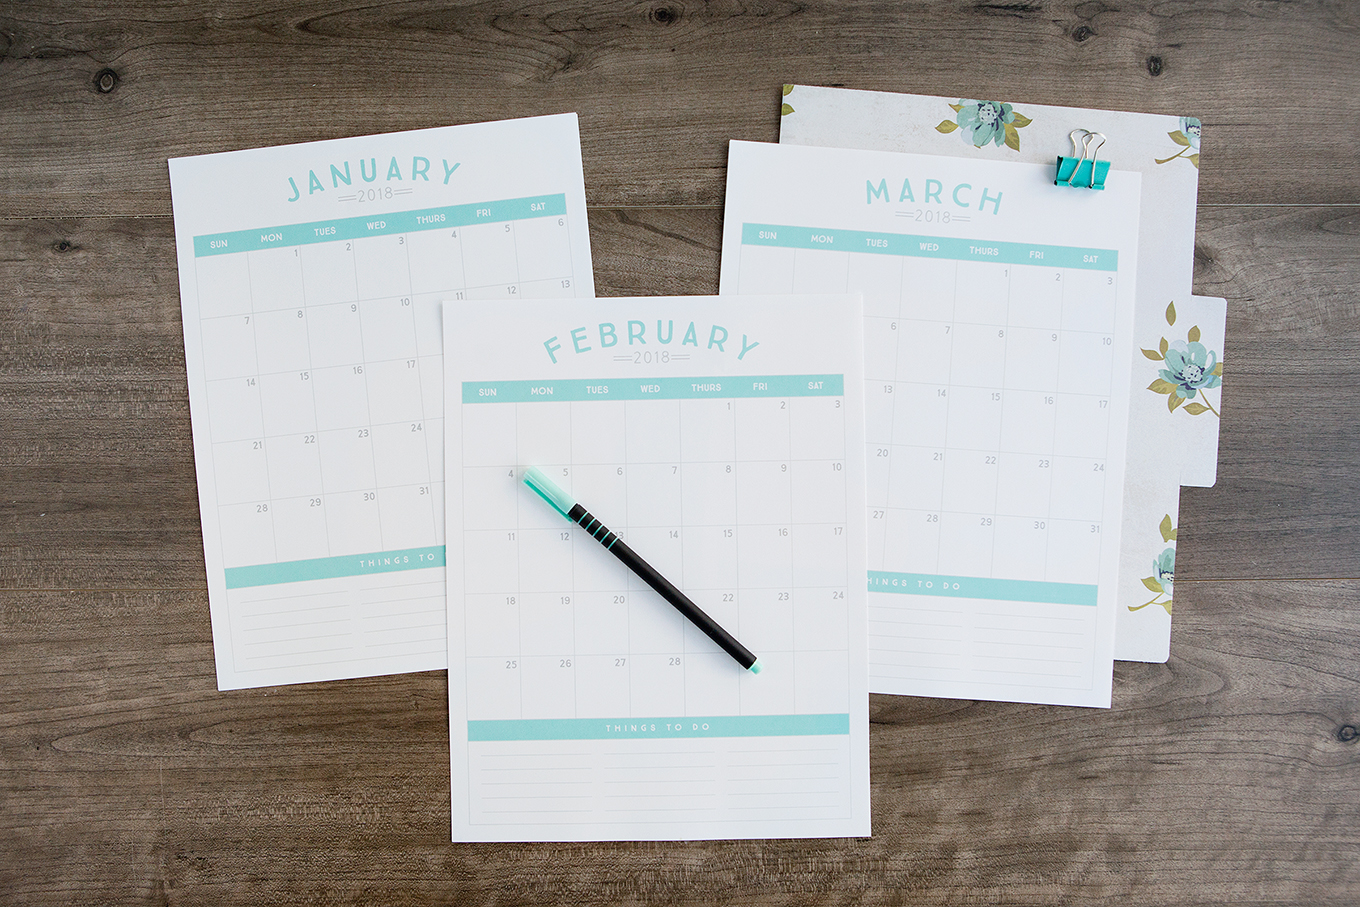 16 DIY Organization Projects: 2018 Free Printable Calendars (Part 1)